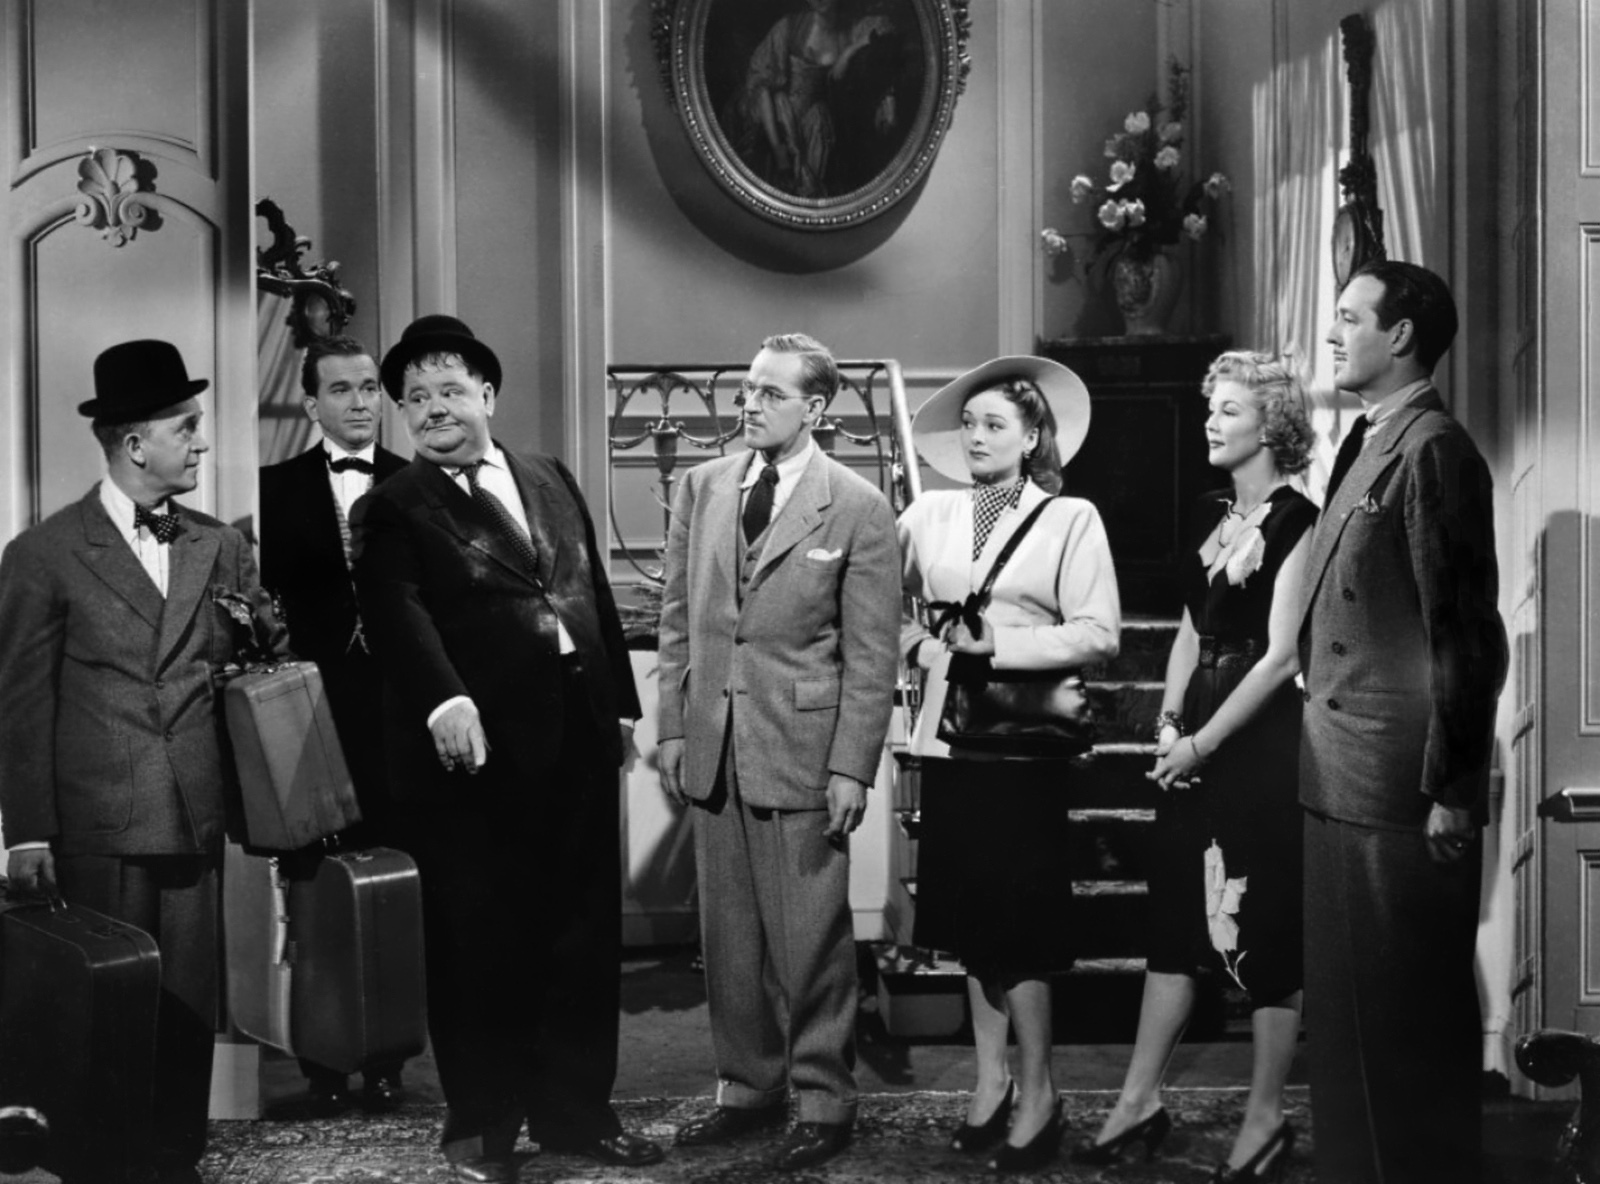 Laurel & Hardy with (L to R) Stan Laurel, George Melford, Oliver Hardy, Arthur Space, Doris Merrick, Veda Ann Borg, Philip van Zandt